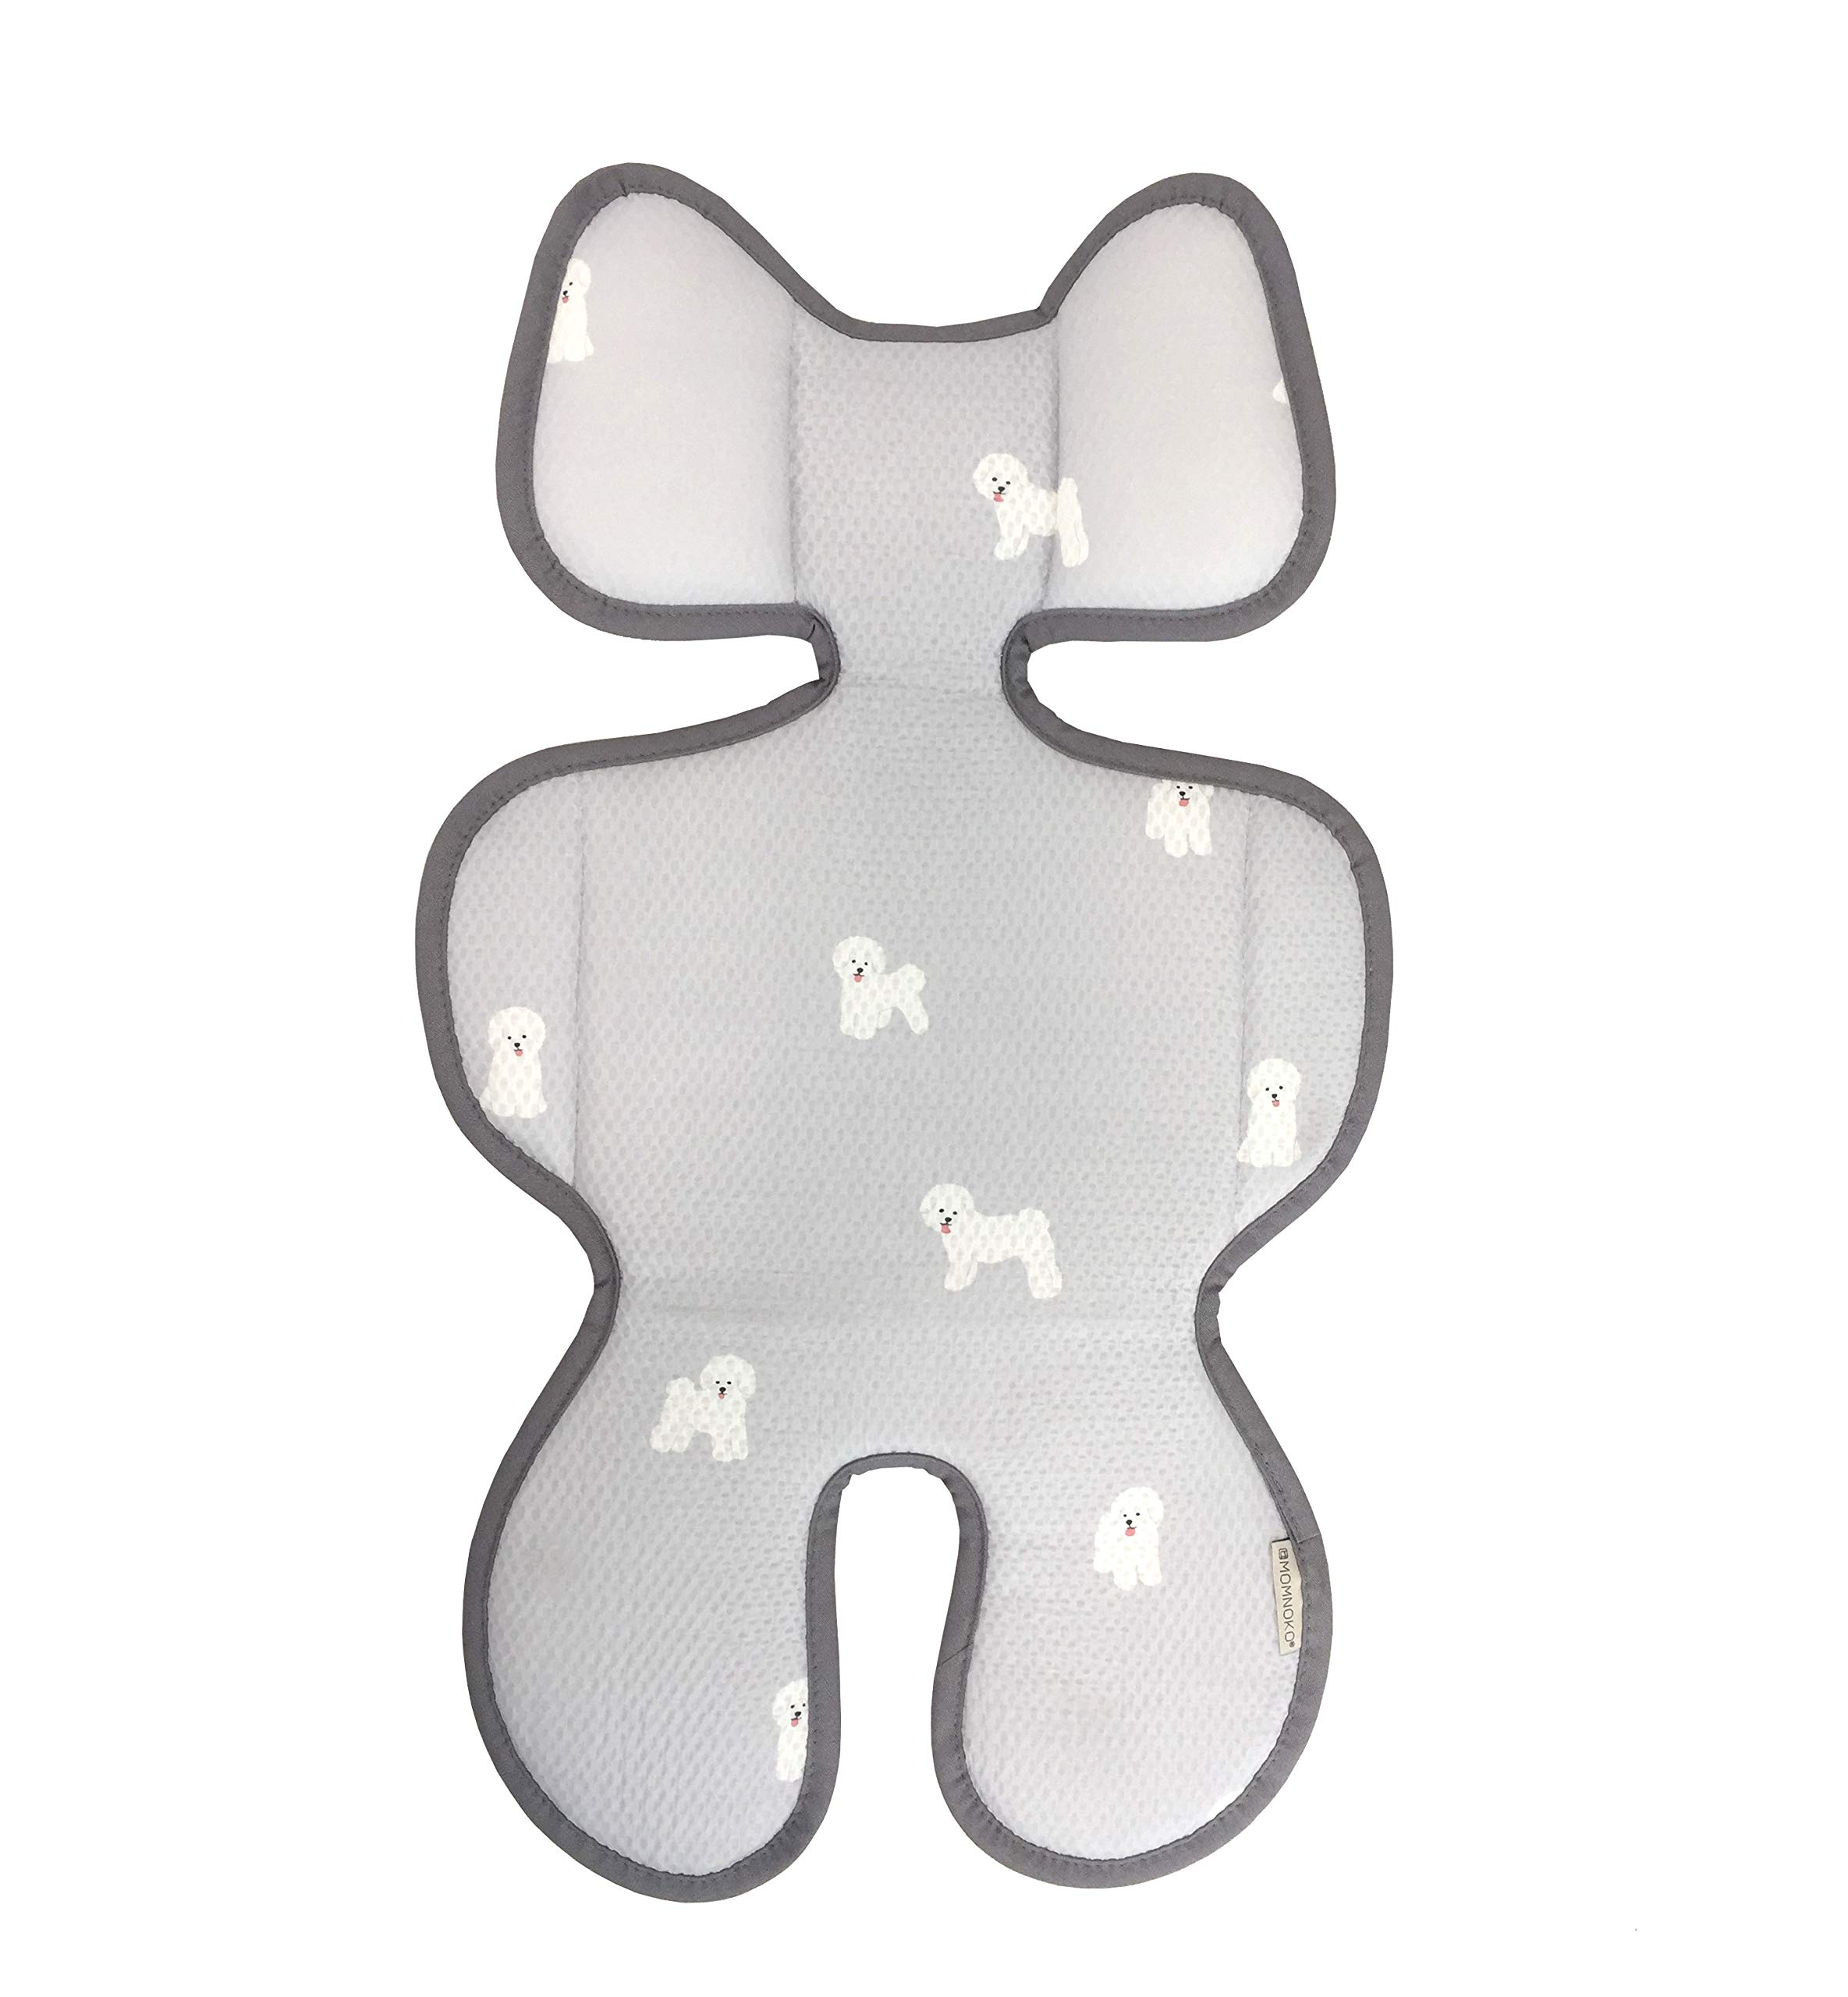 Momnoko 3D Air Mesh Cool Liner for Stroller & Car Seat (Puppy Pattern) by Momnoko (Image #1)